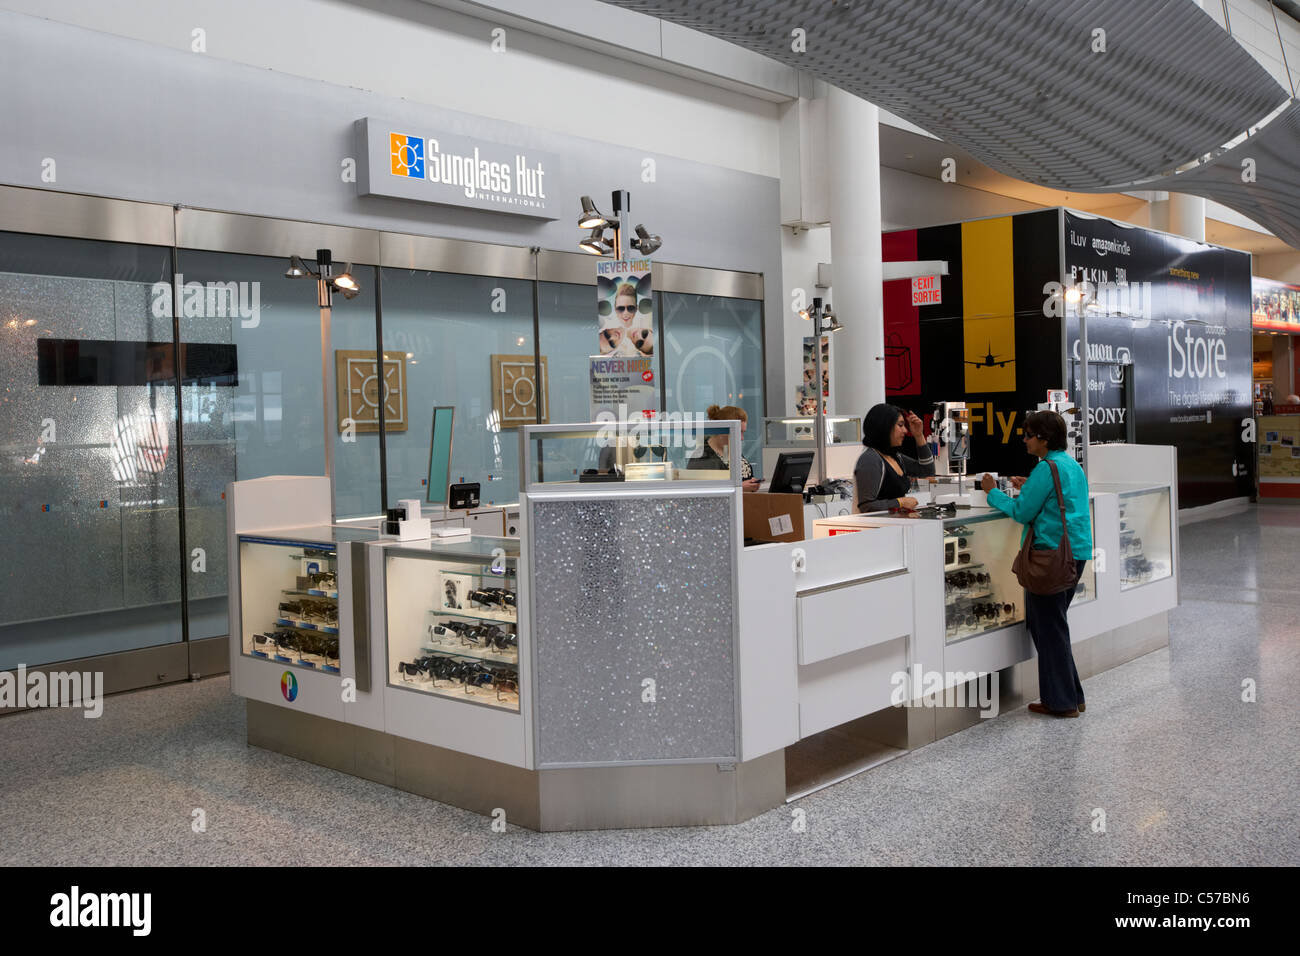 sunglass hut concession store in departure lounge of terminal 1 Toronto Pearson International Airport Ontario Canada - Stock Image